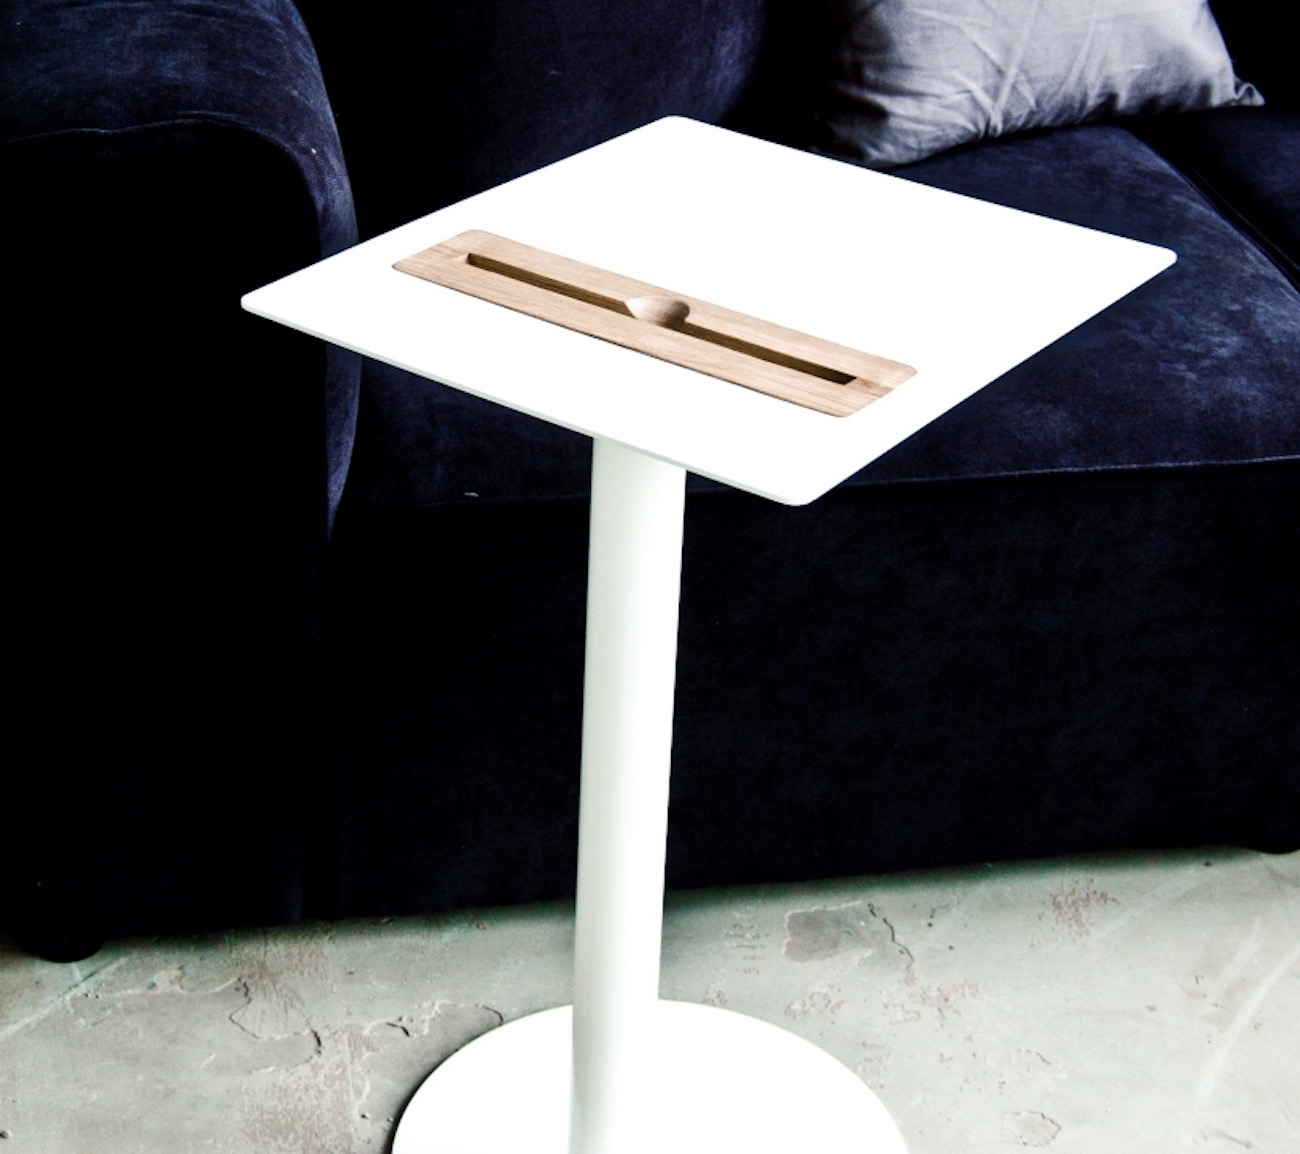 Nomad Tablet Table